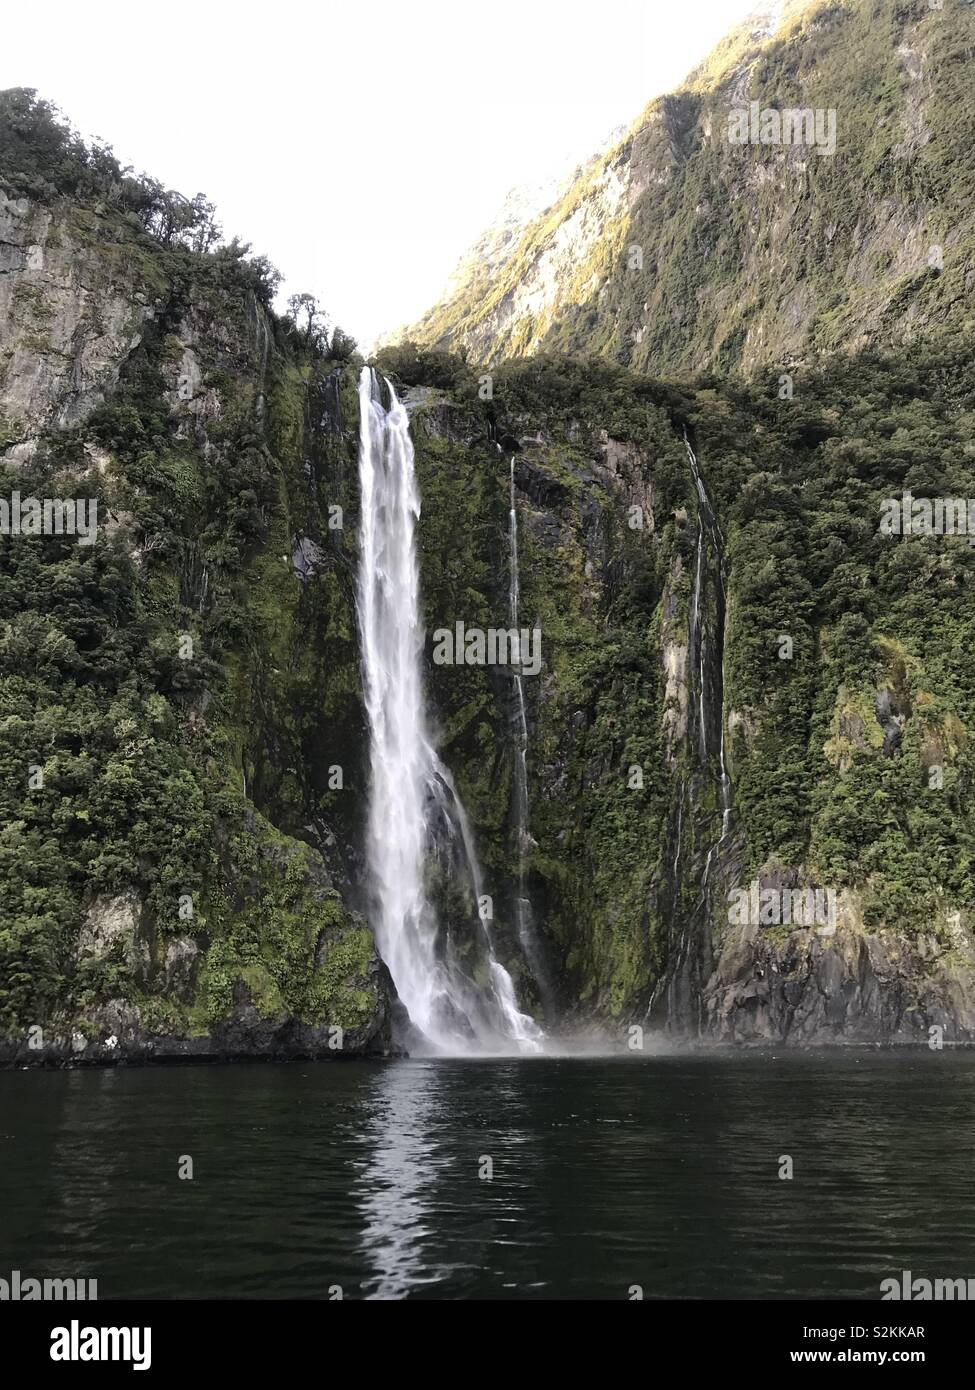 Waterfall in Milford Sound, New Zealand - Stock Image